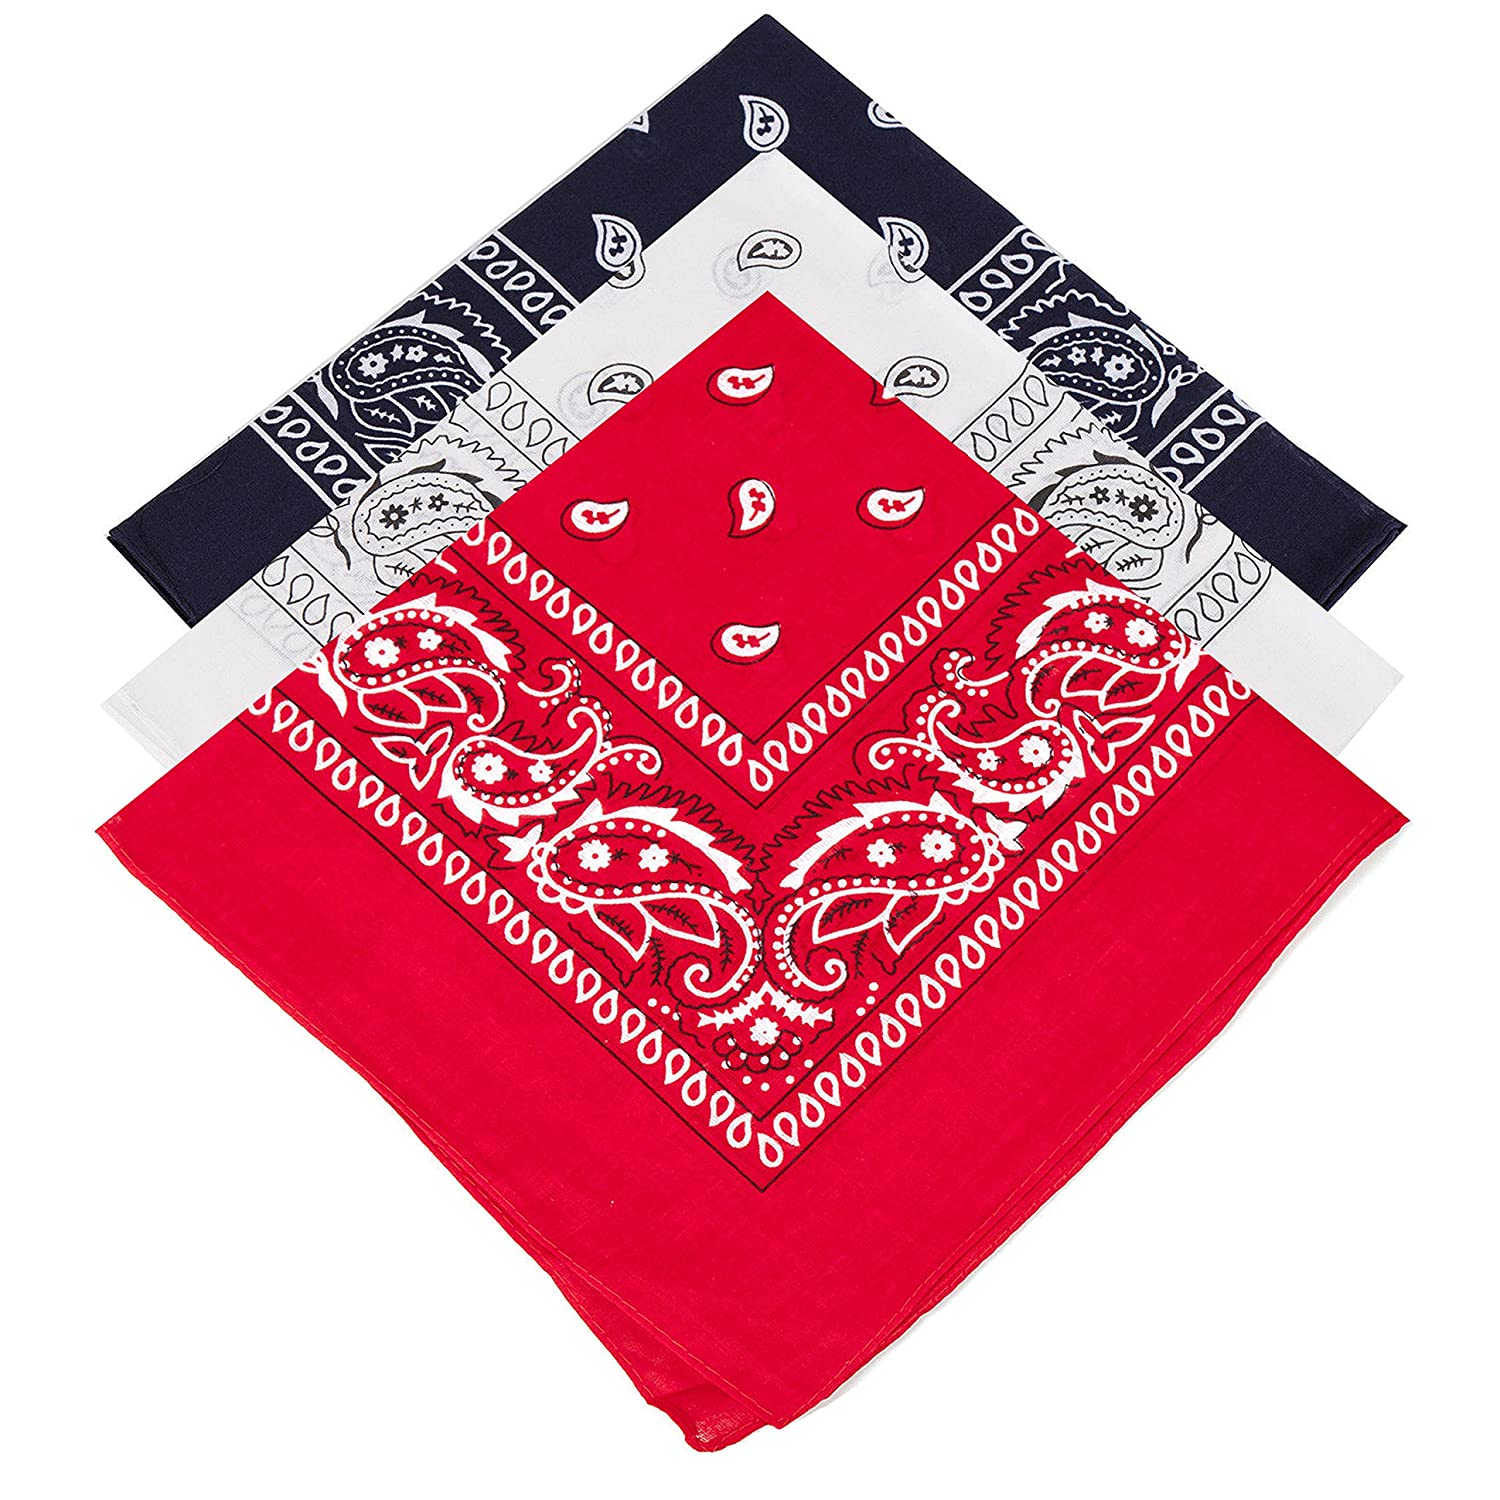 3 Unisex Paisley Bandanas Red White Black